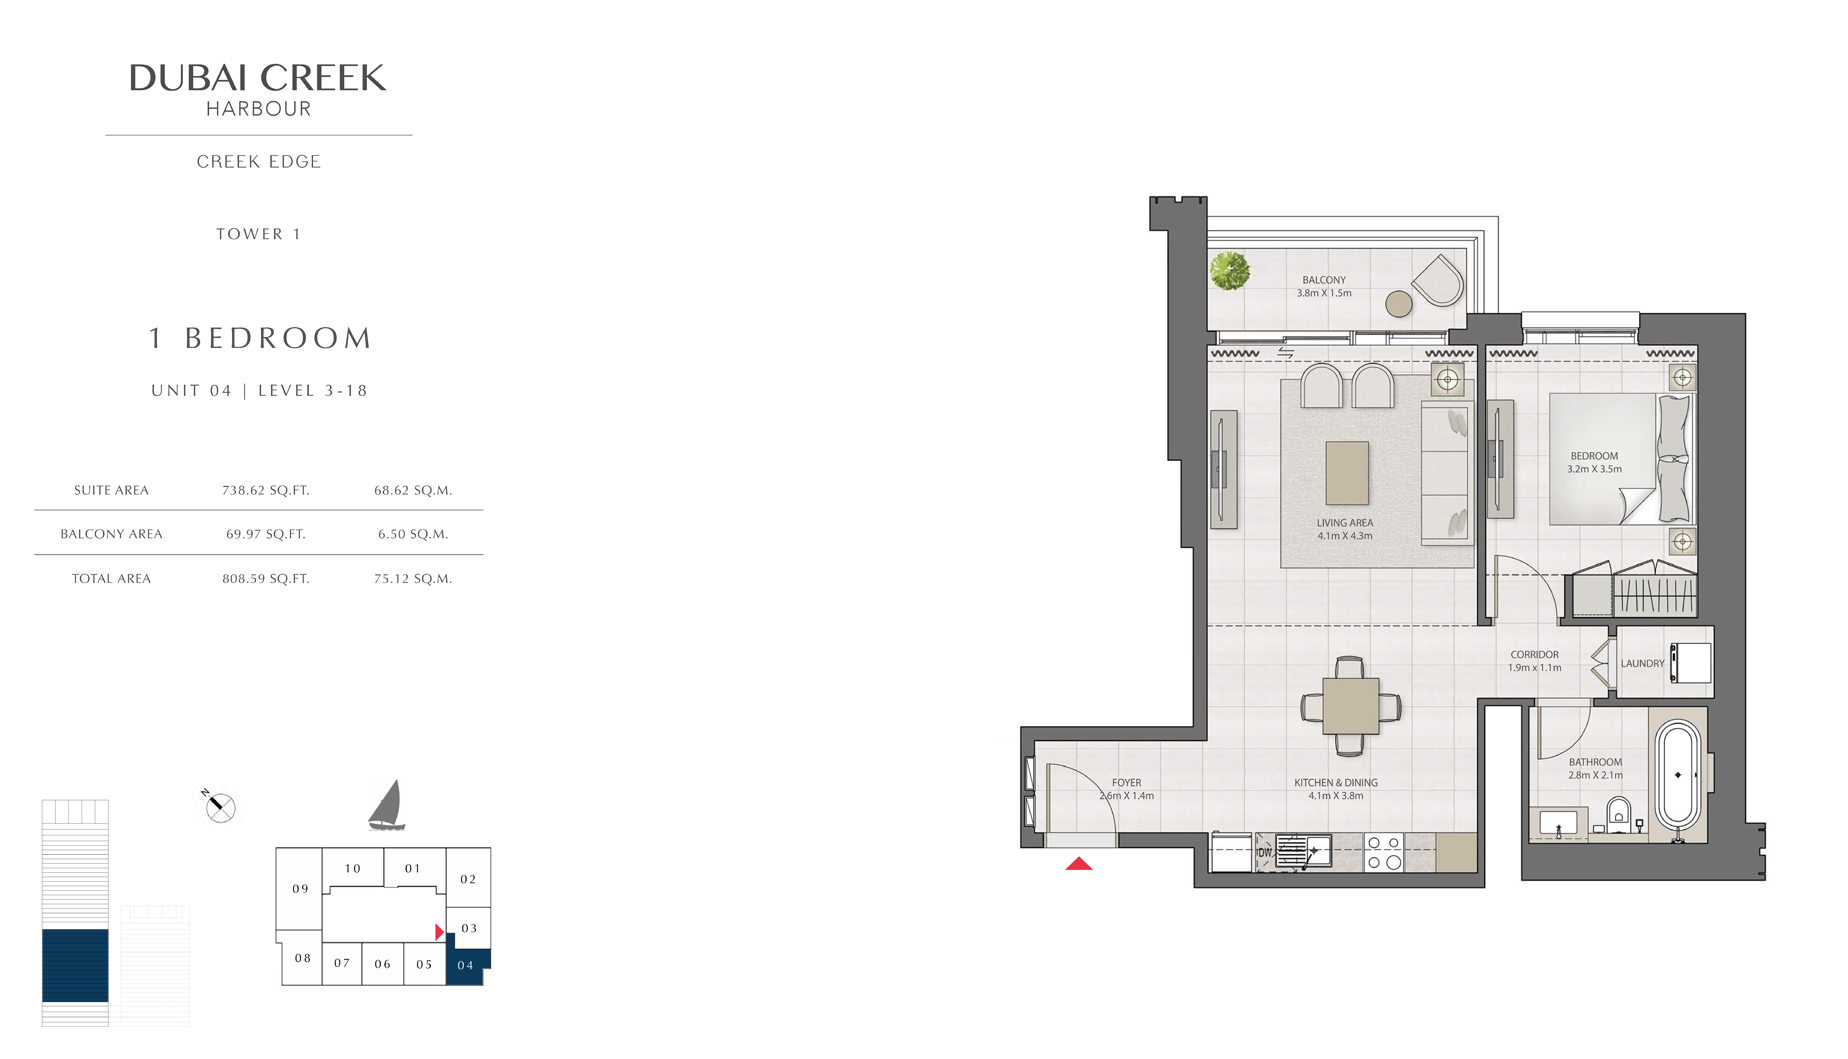 1 Bedroom Tower 1 Unit 04 Level 3 -18 Size 808 sq.ft